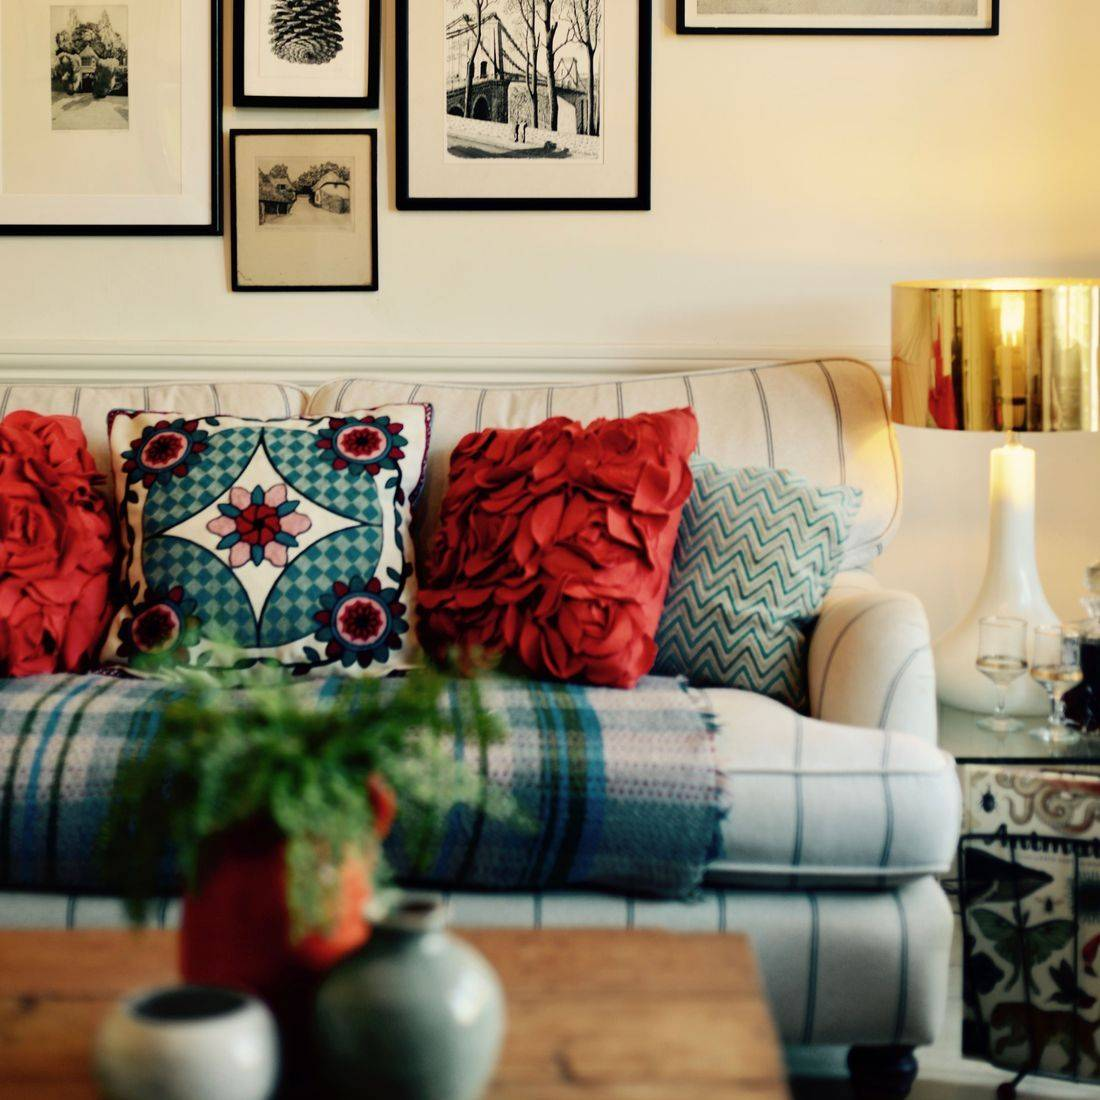 Country Living Room by Alx Gunn Interiors East Sussex, UK, alxgunn-interiors.co.uk